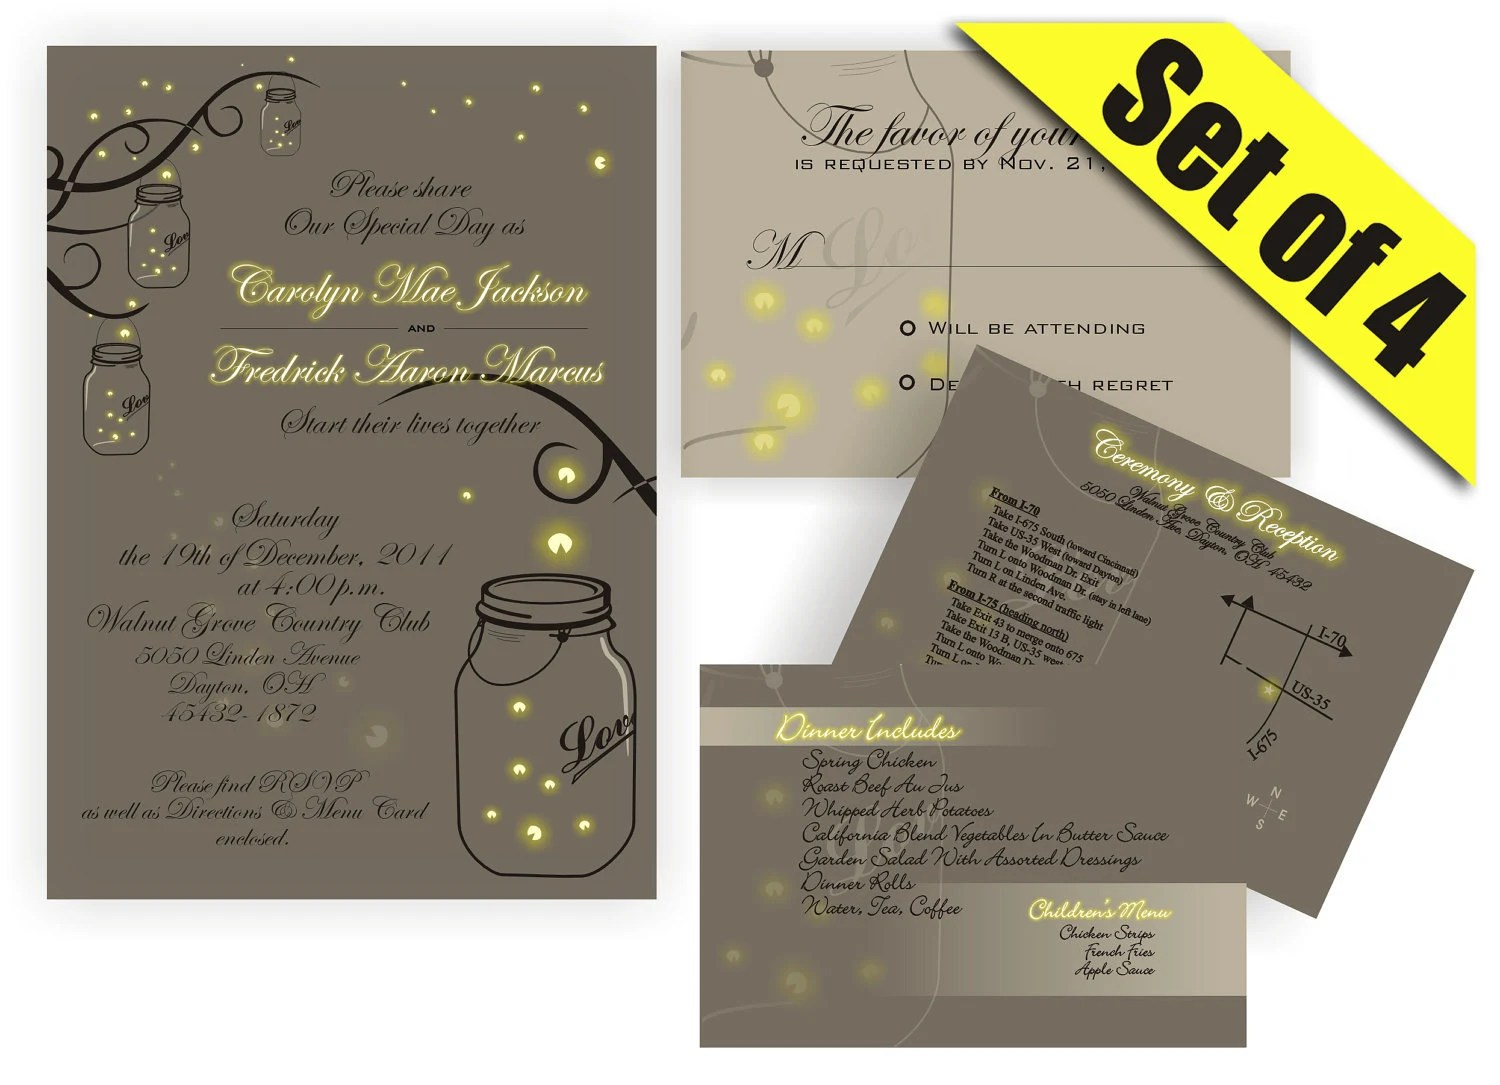 wedding invitation templates mason jar mason jar wedding invitations Invitations Template Mason jar bridal shower Request a custom order and have something made just for you